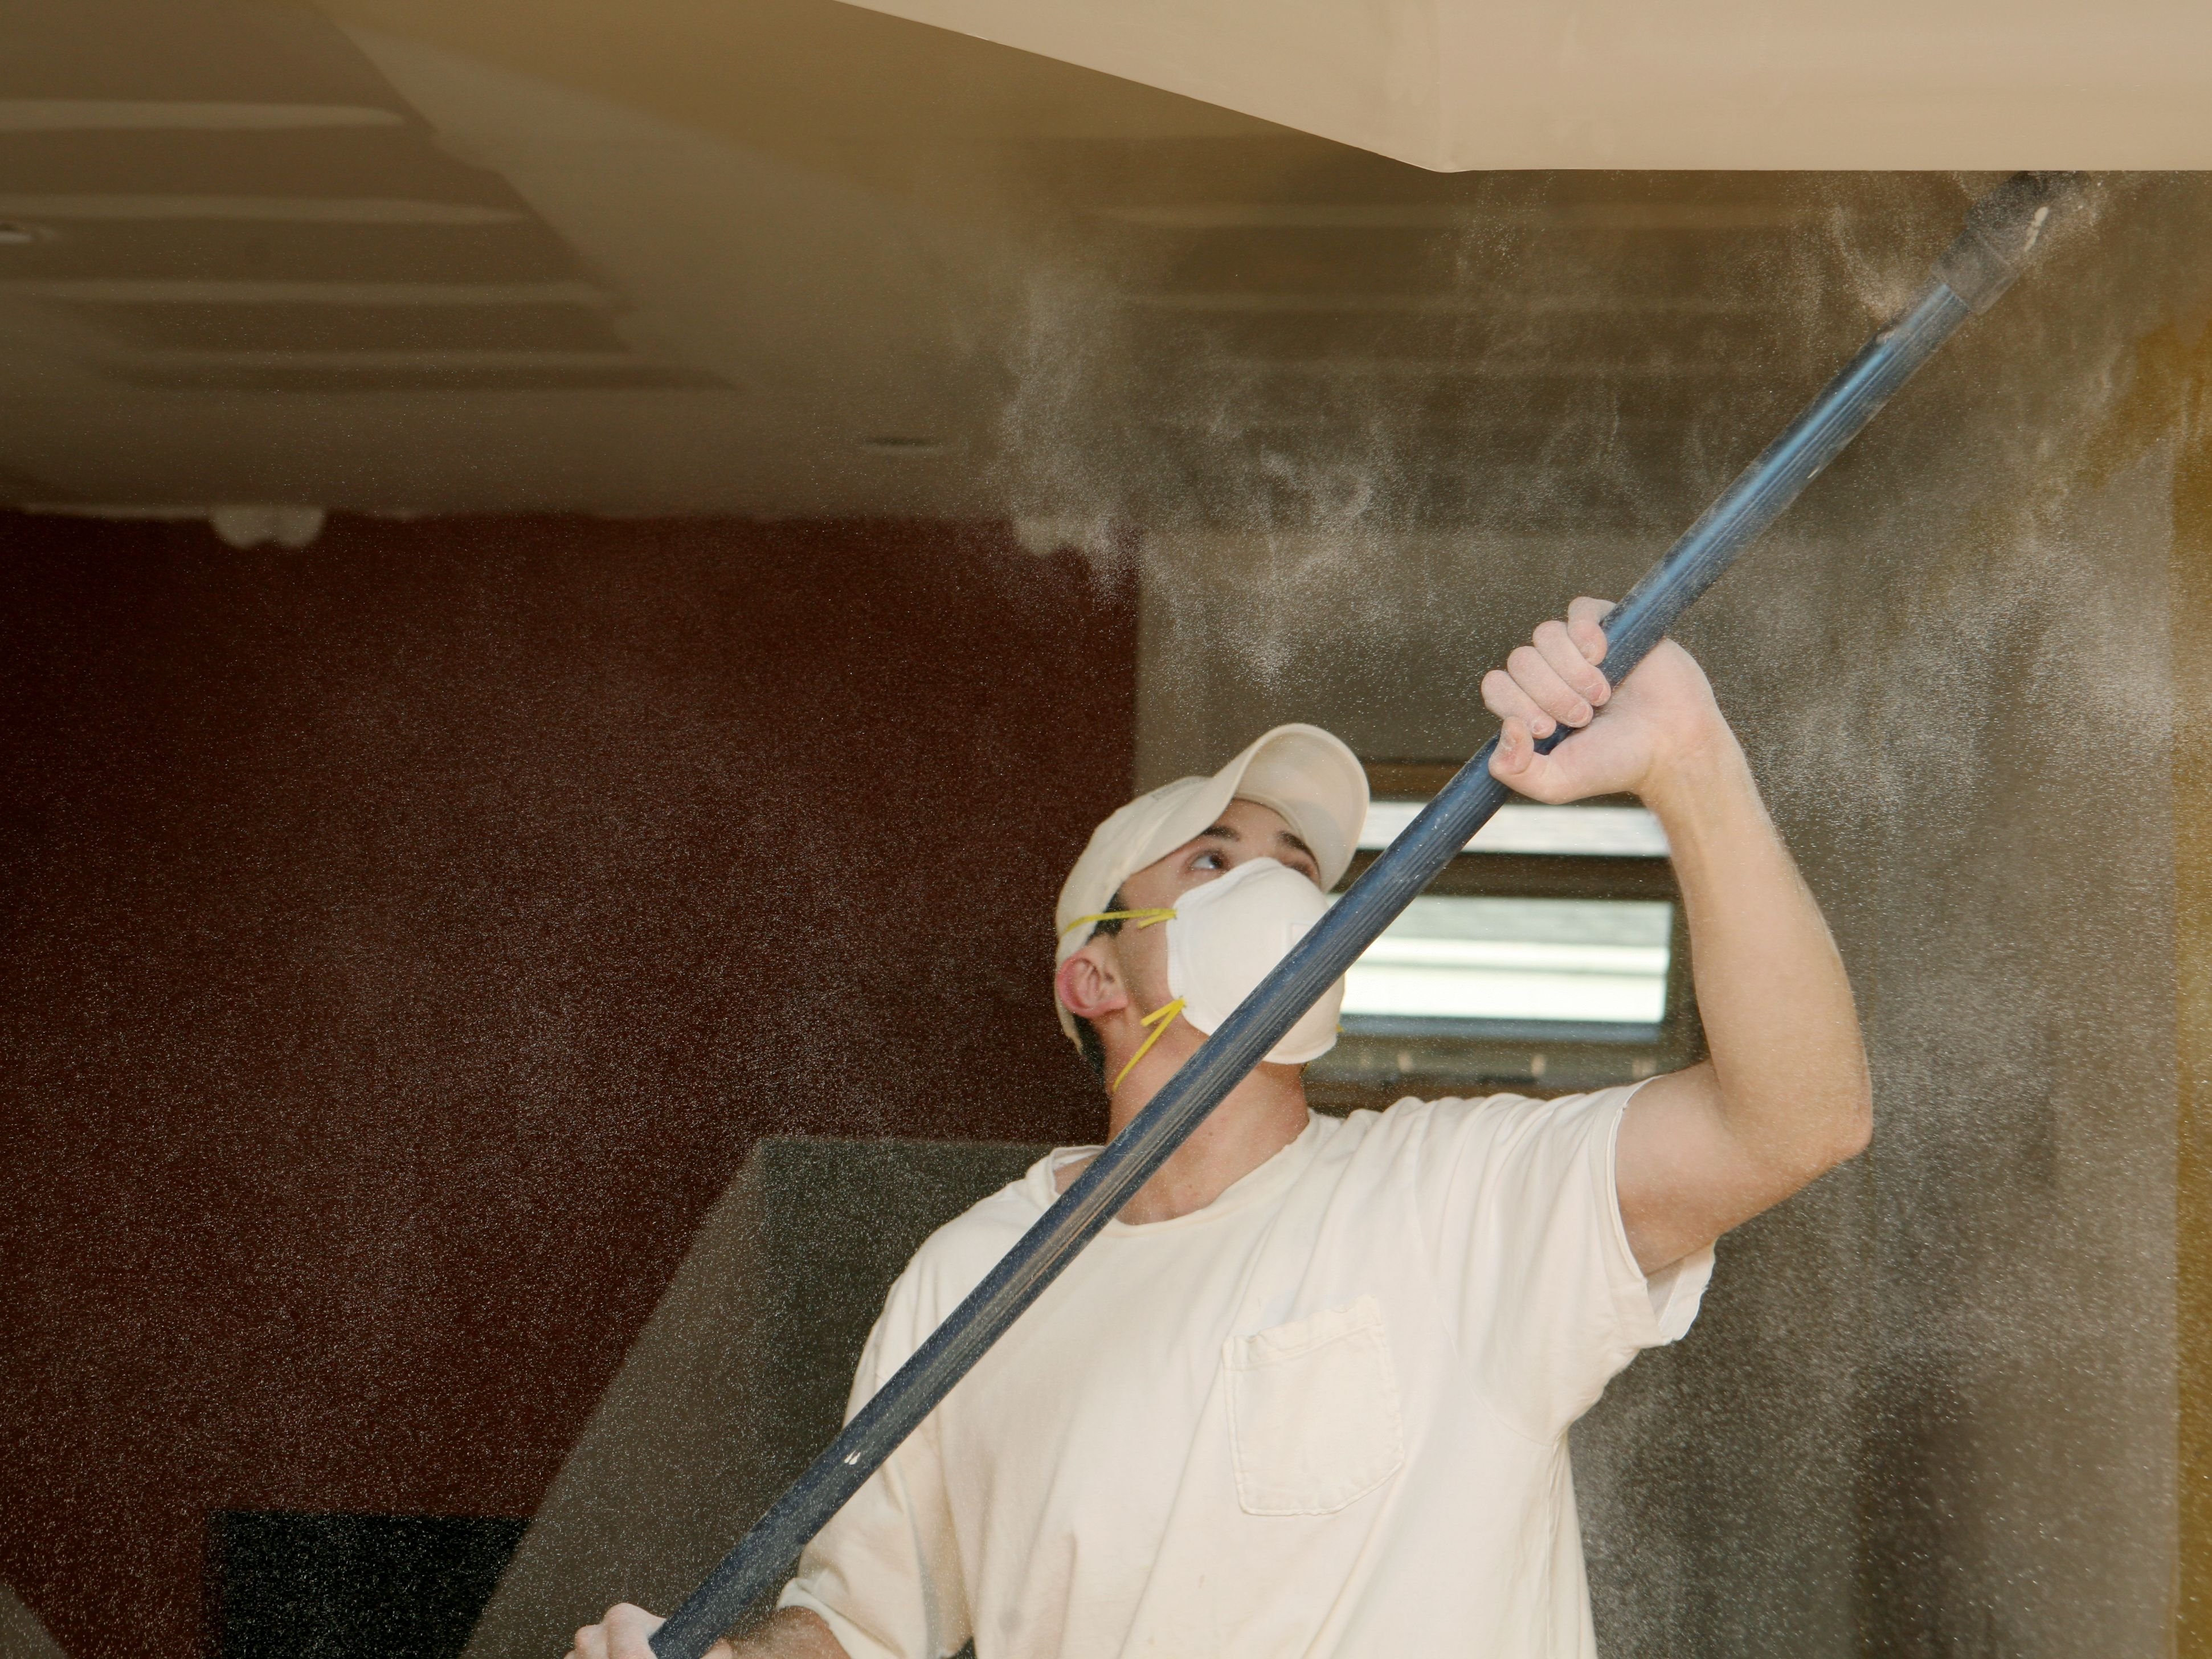 Reducing Drywall Dust During Your Home Remodel